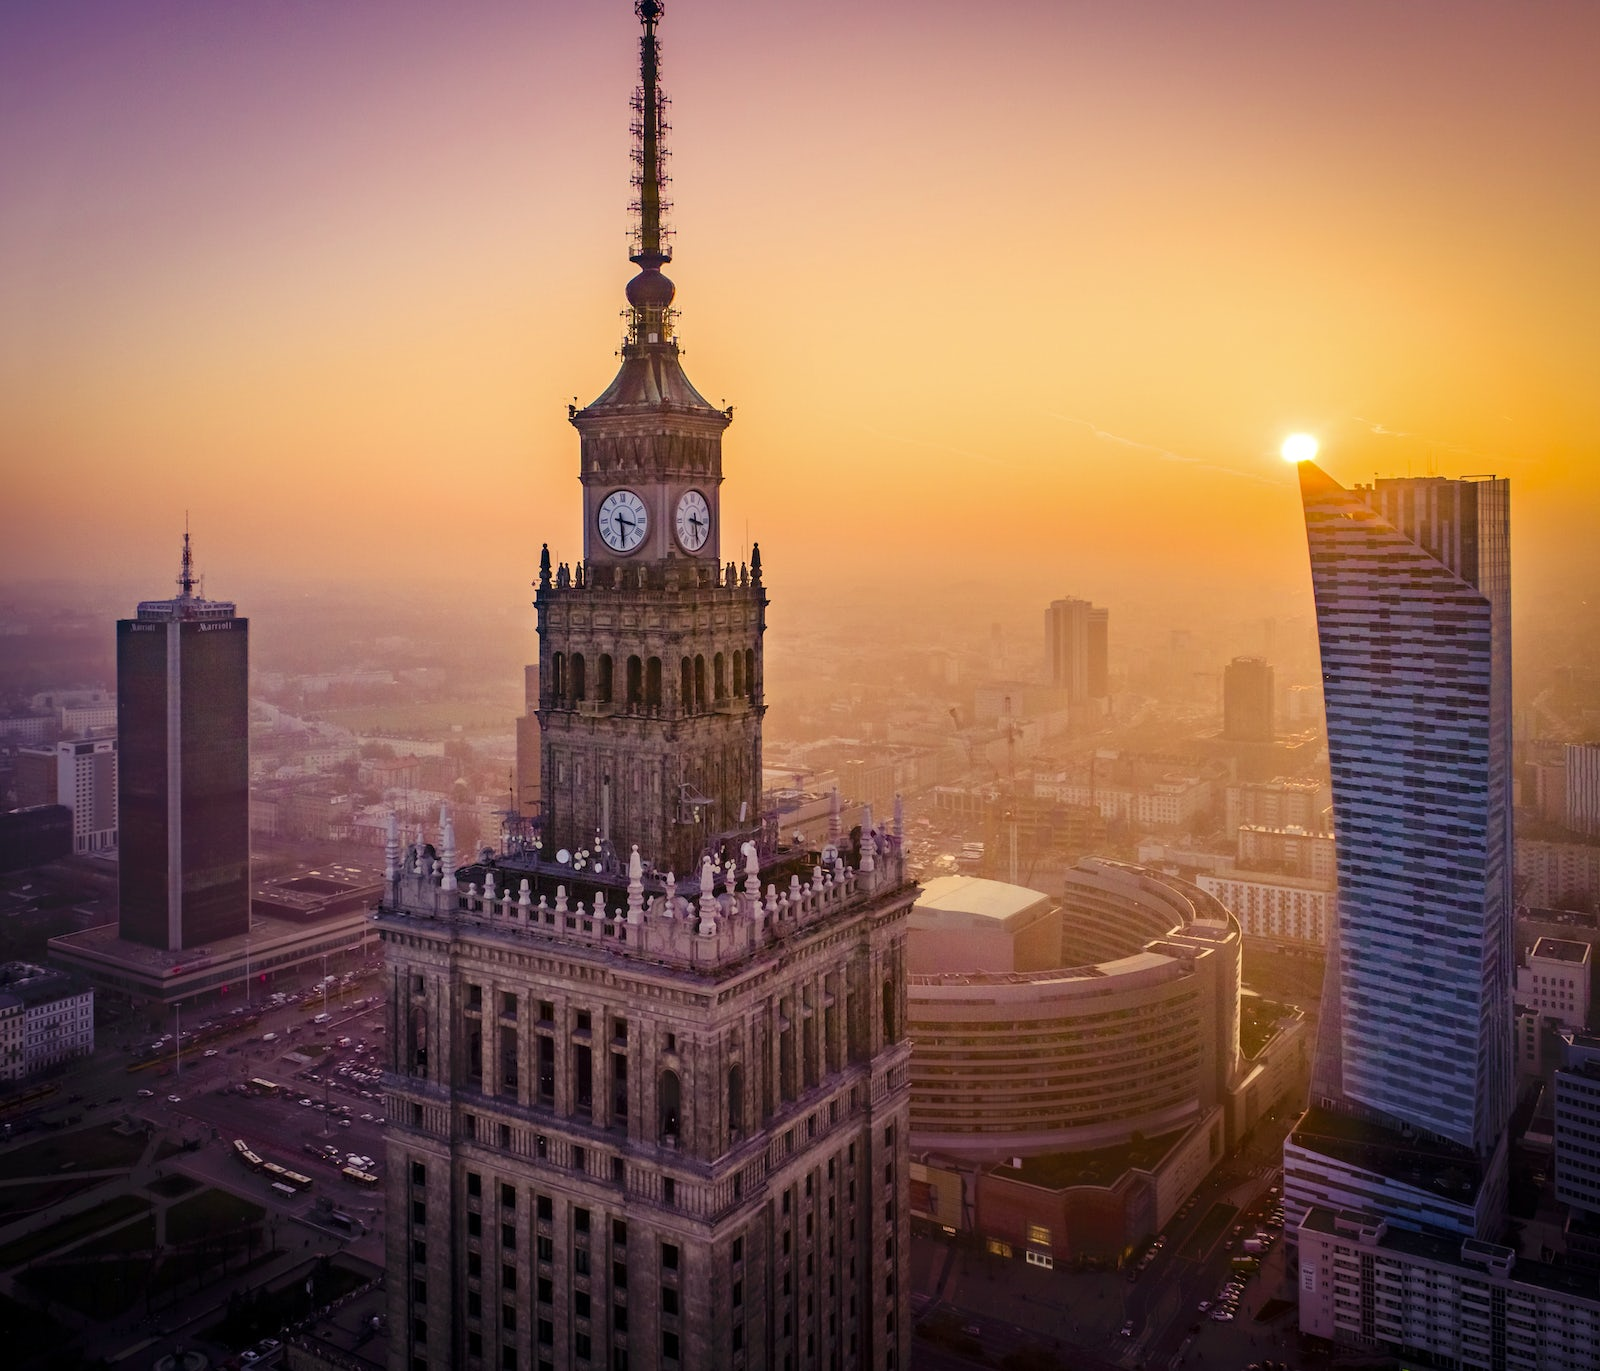 ©iStock/Drone in Warsaw by Prokreacja.com